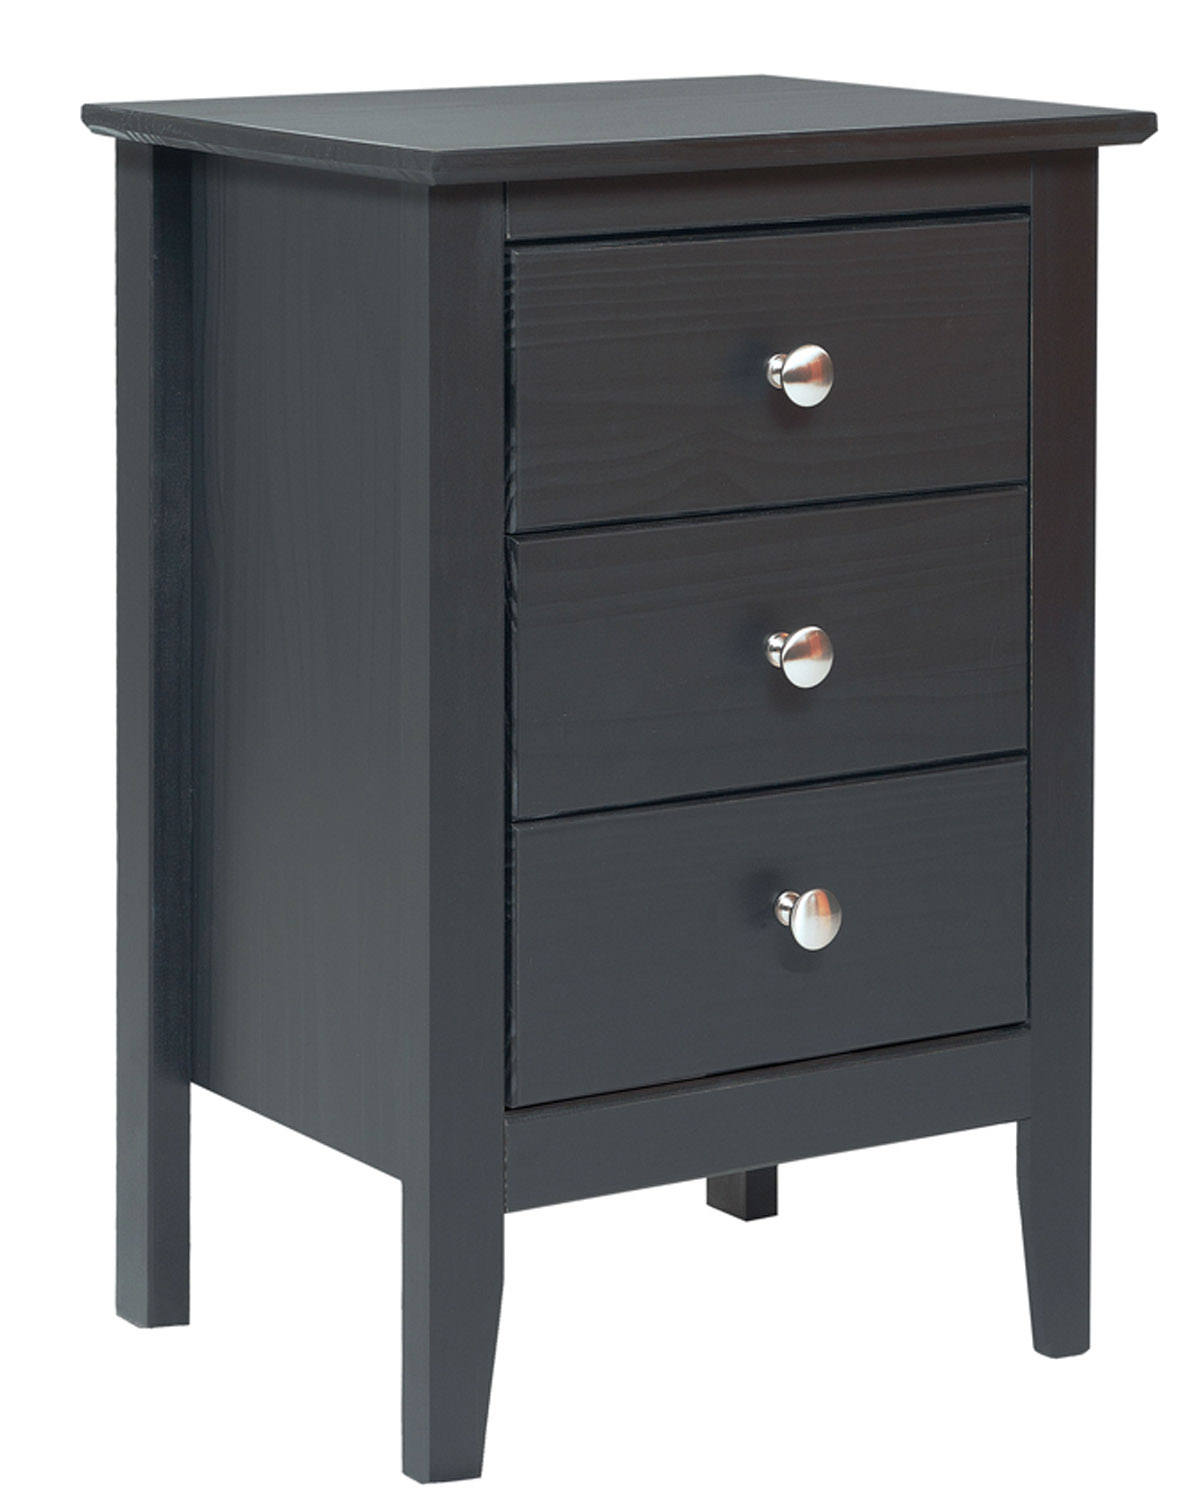 Easy Pieces Espresso U2013 3 Drawer End Table / Nightstand